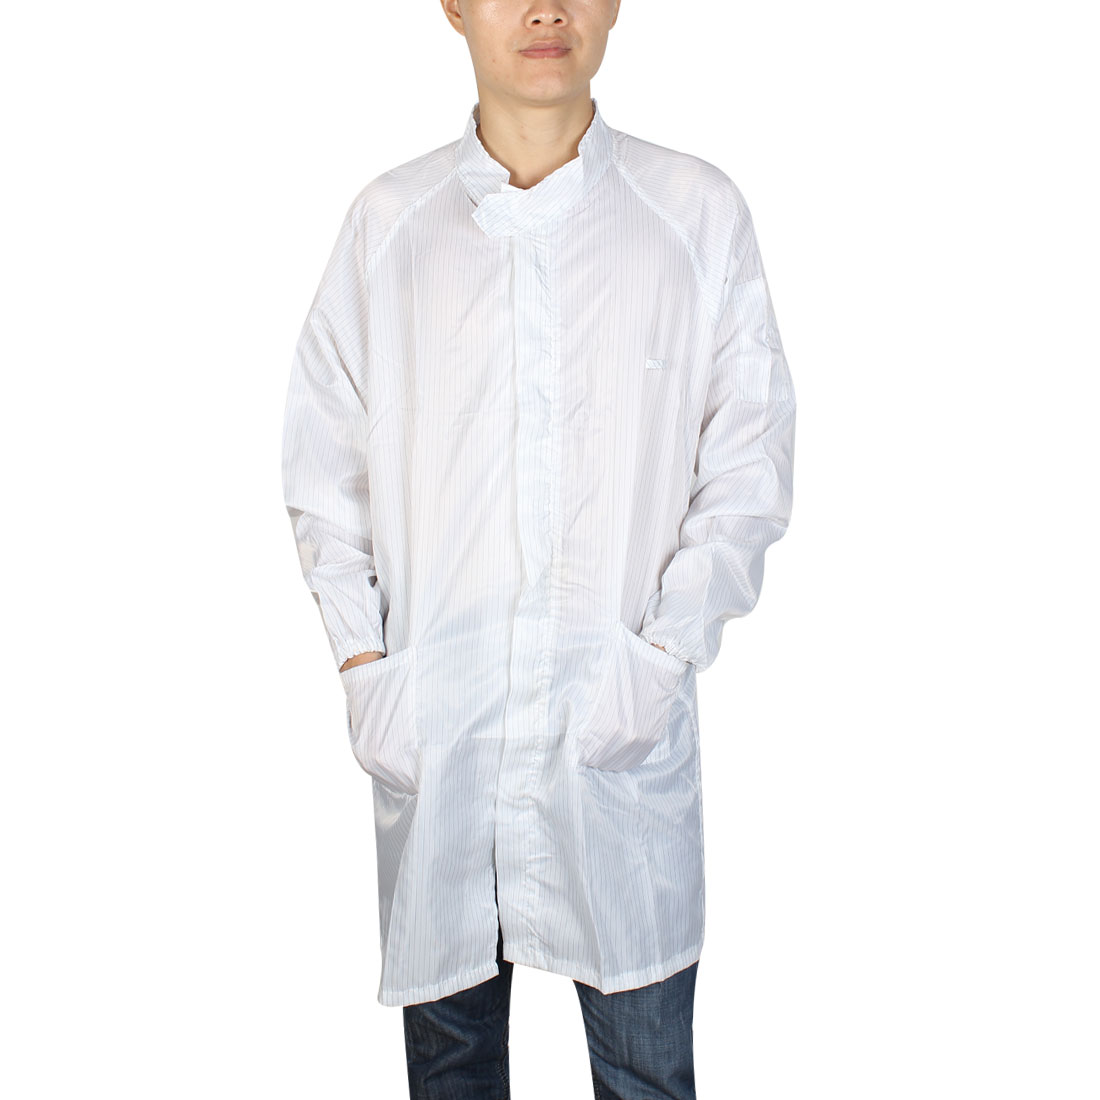 XL White Lab Zipper Elastic Cuff Anti Static Coat Overalls Uniform for Unisex